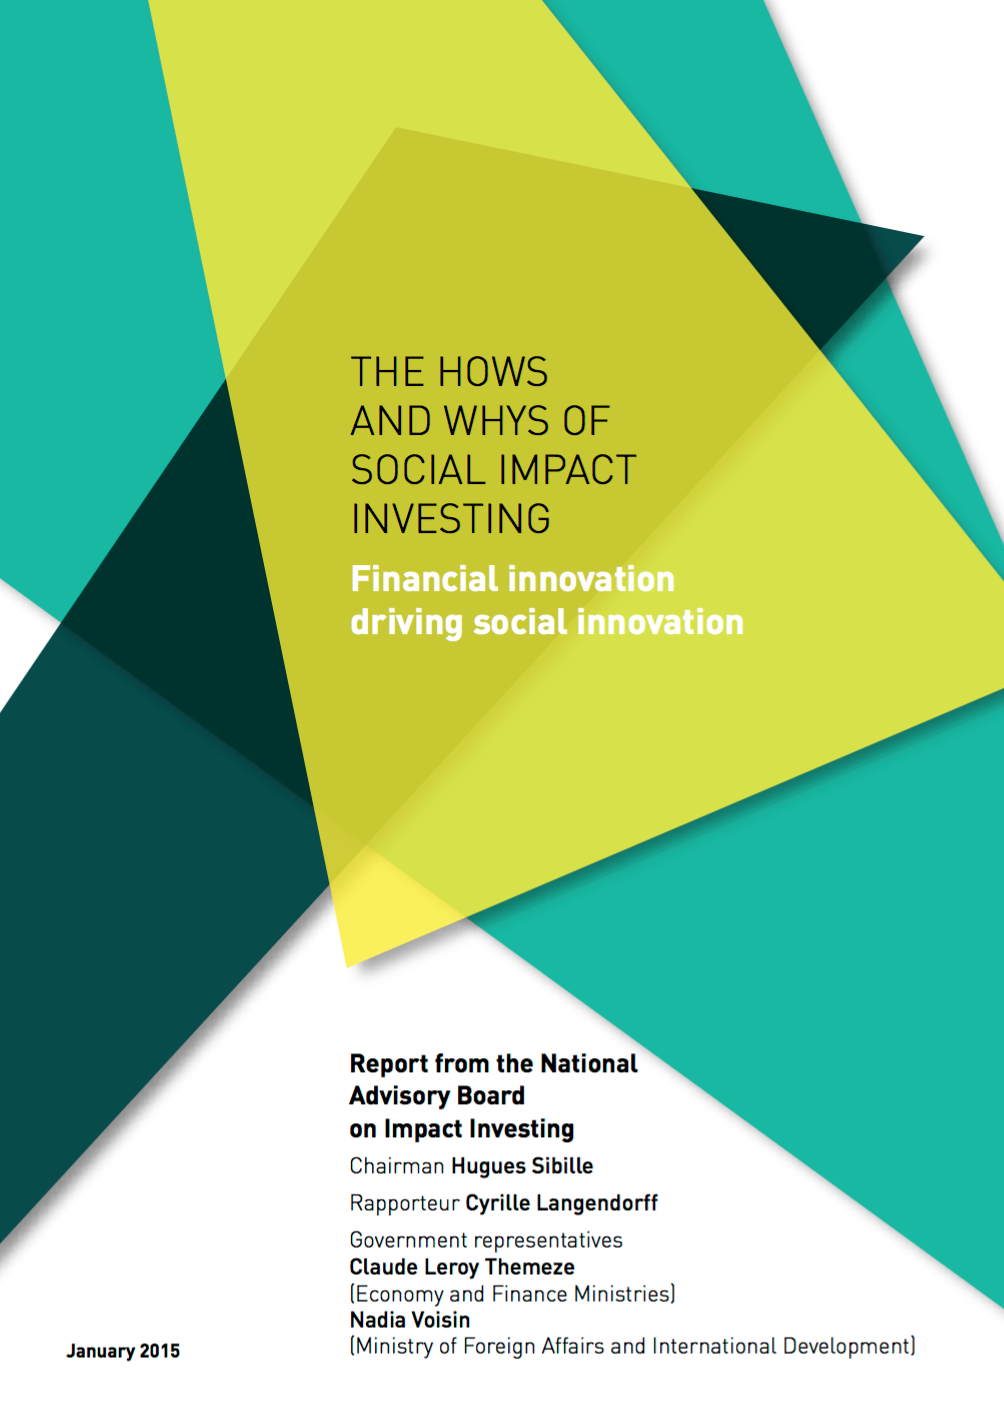 The Hows and Why of Social Impact Investing